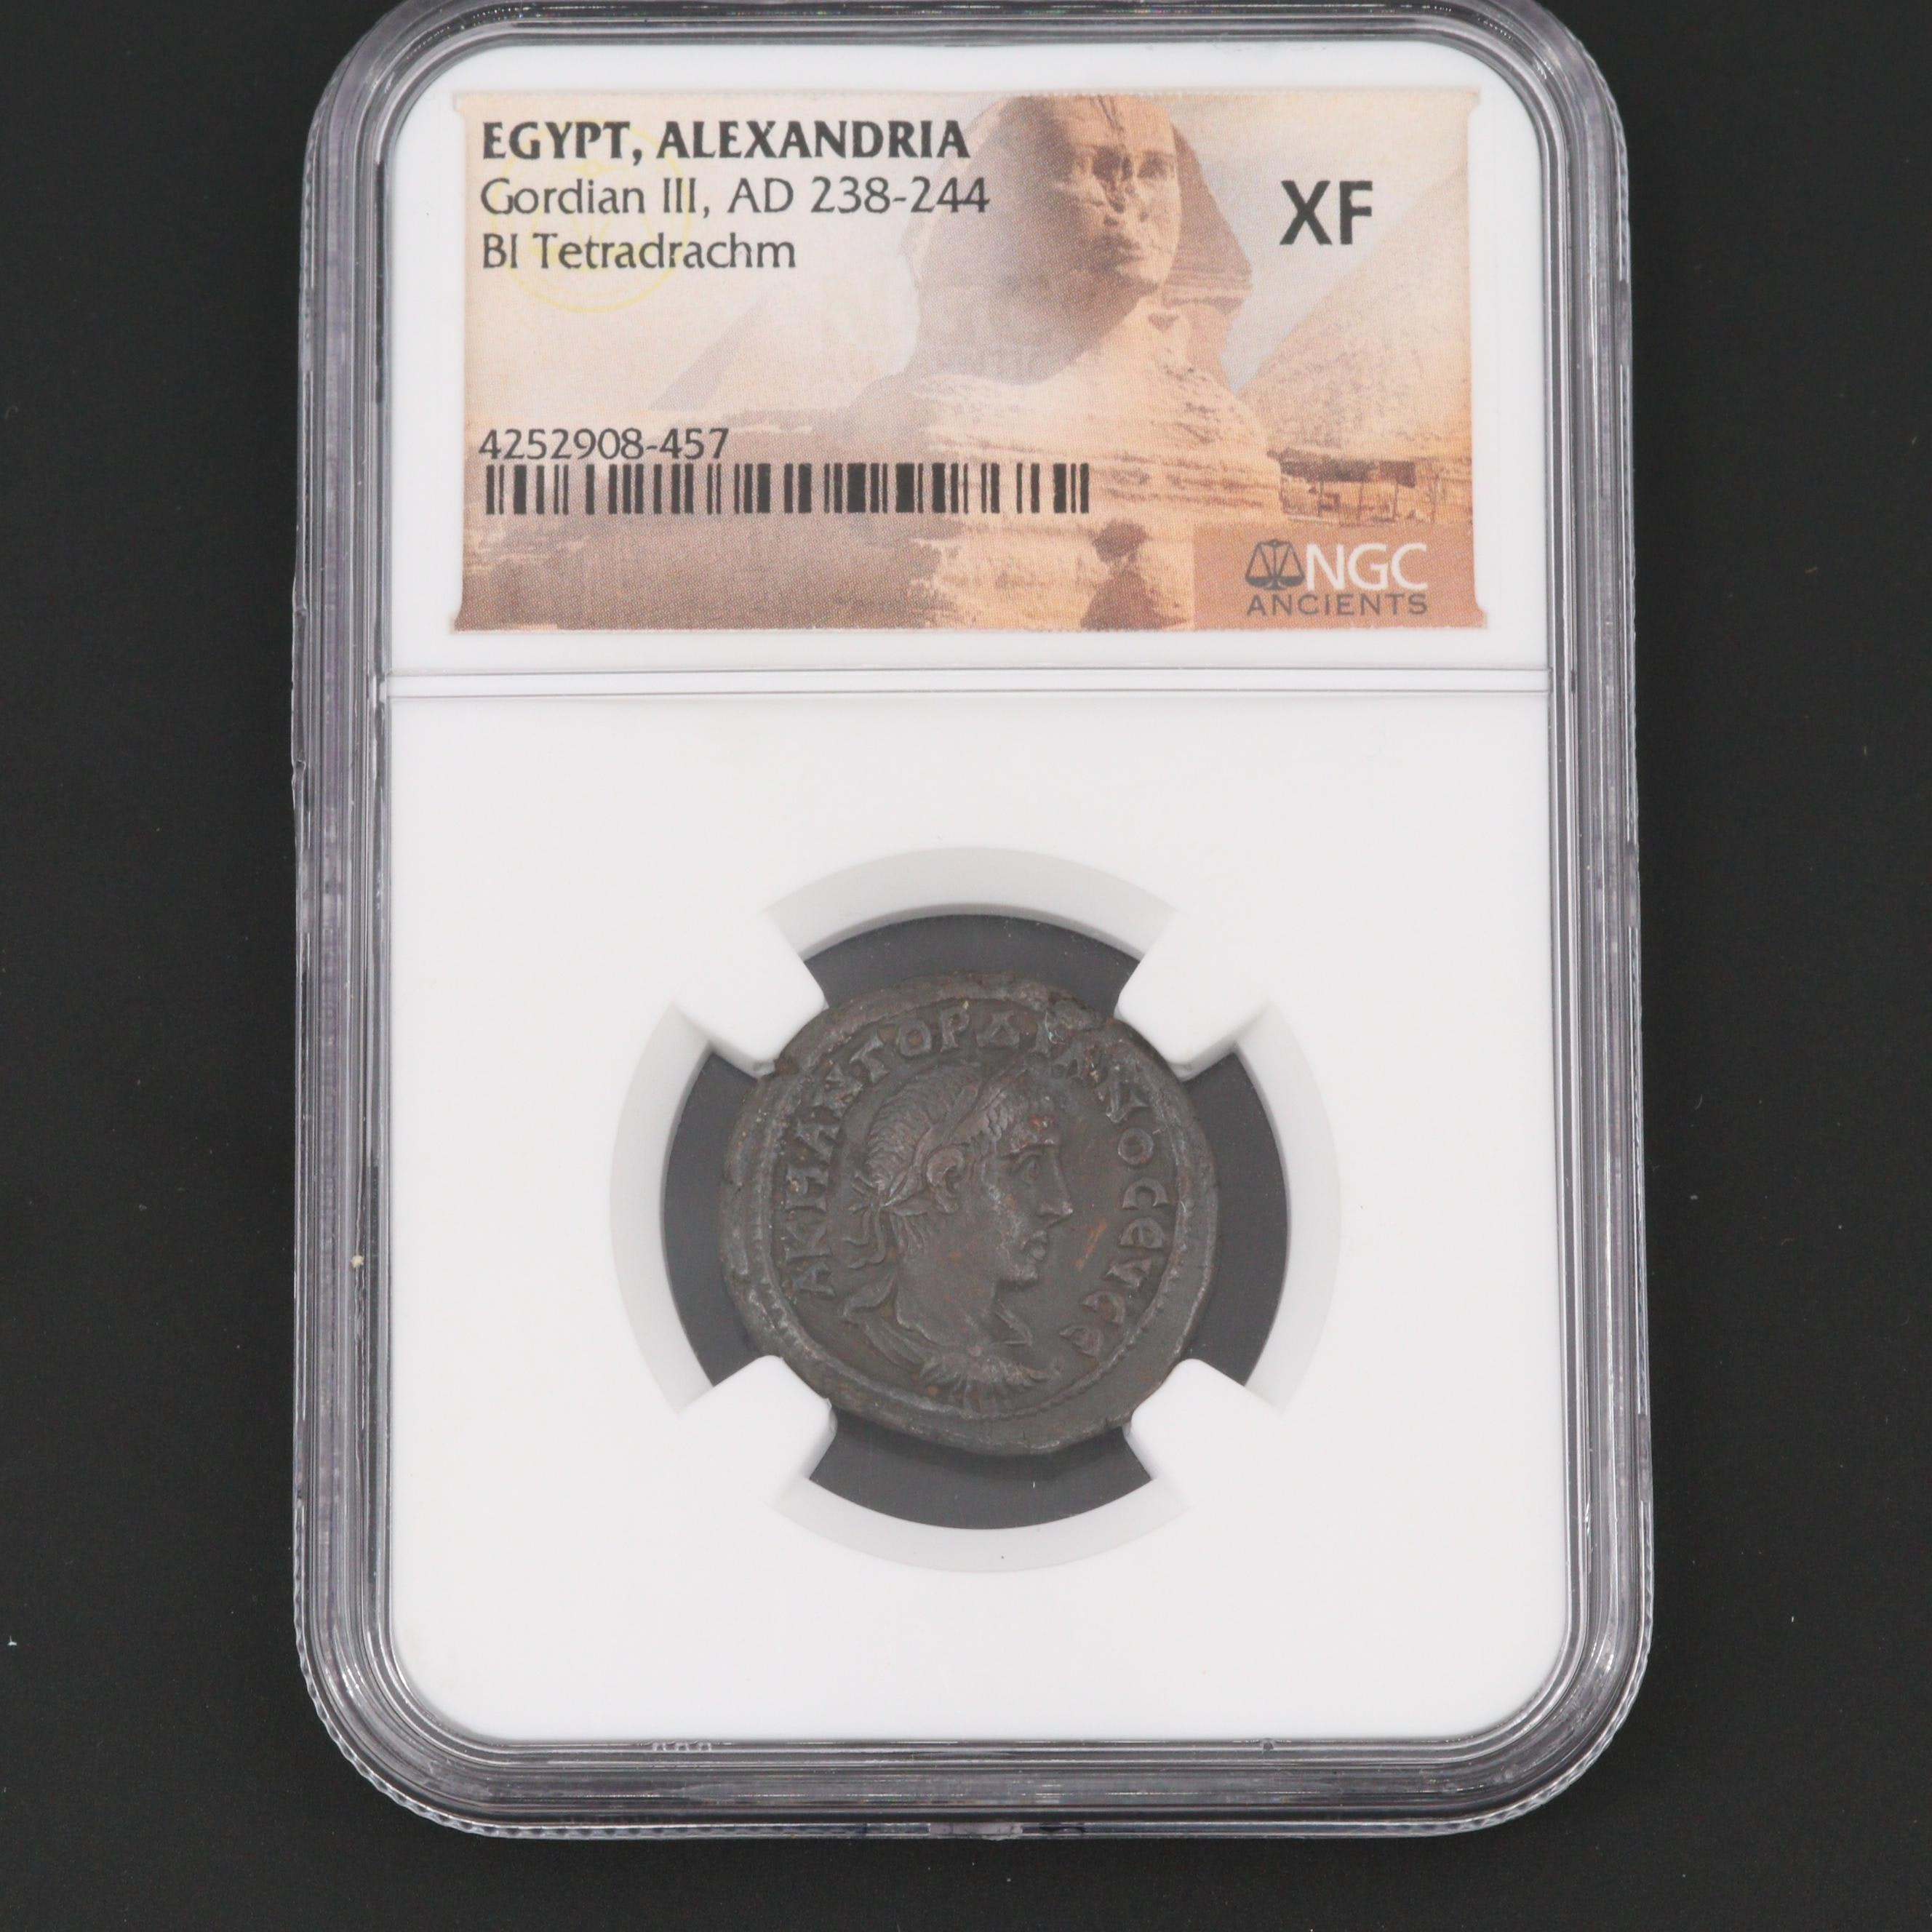 NGC Graded XF Egypt, Alexandria Gordian III Billon Tetradrachm, ca. 240 A.D.